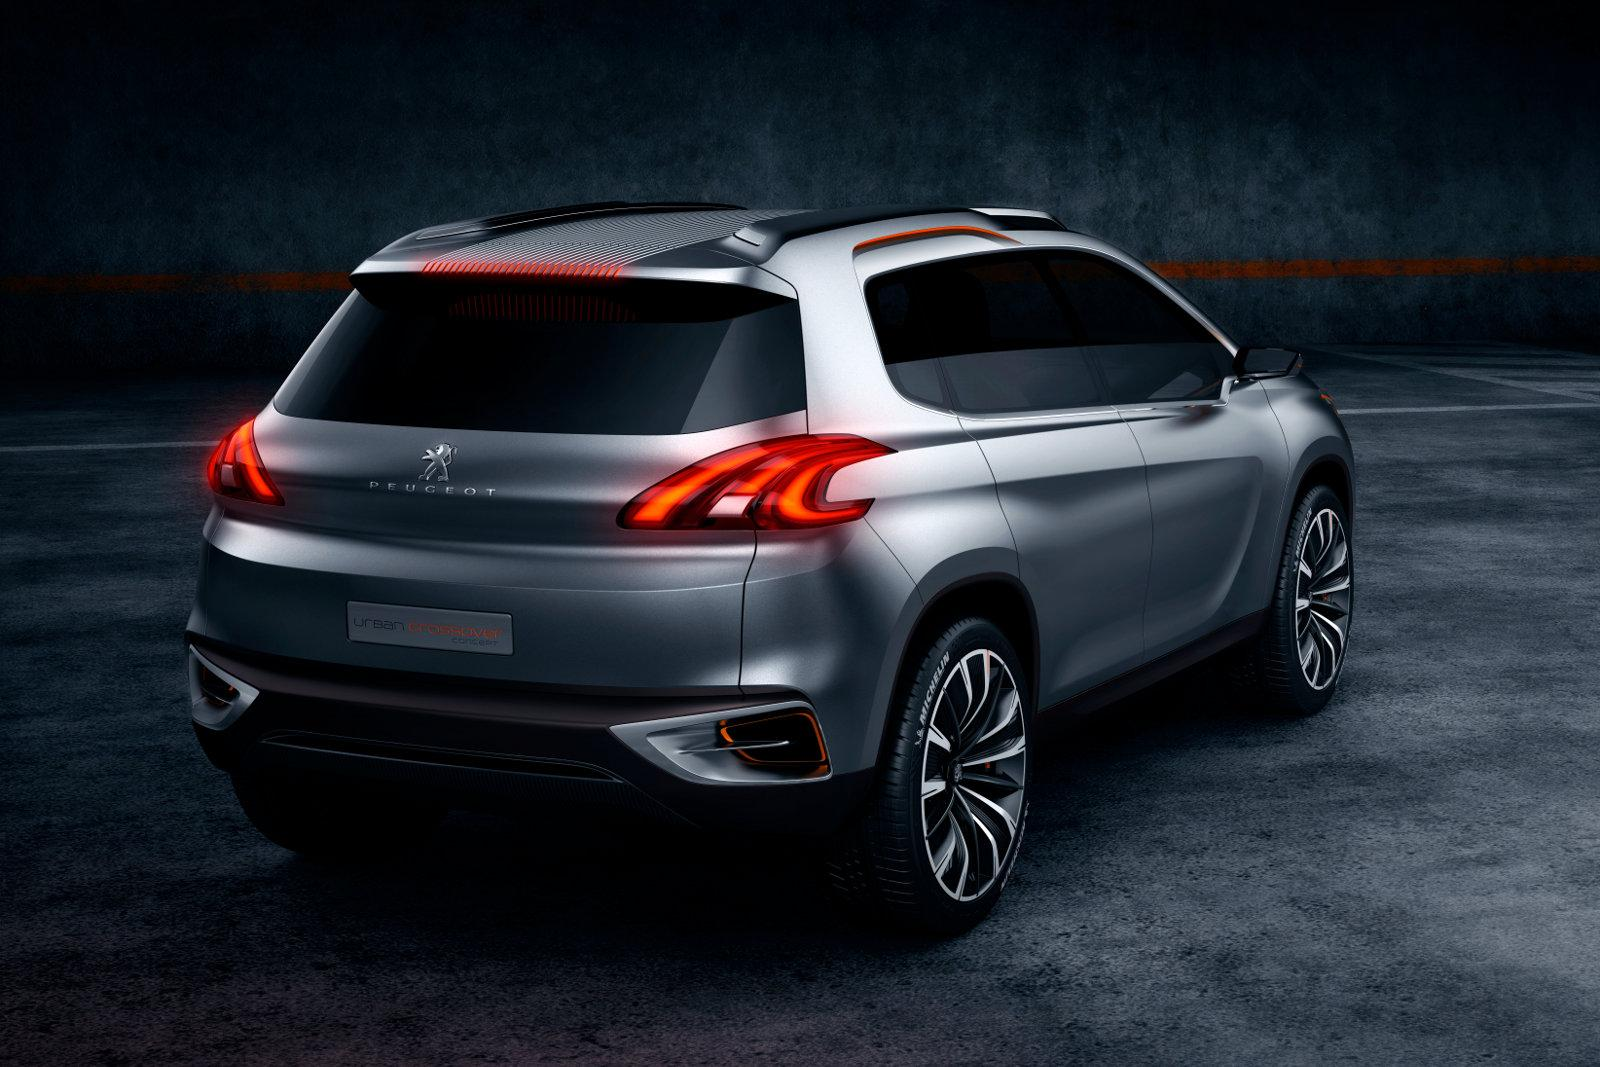 peugeot 2008 previewed as urban crossover concept